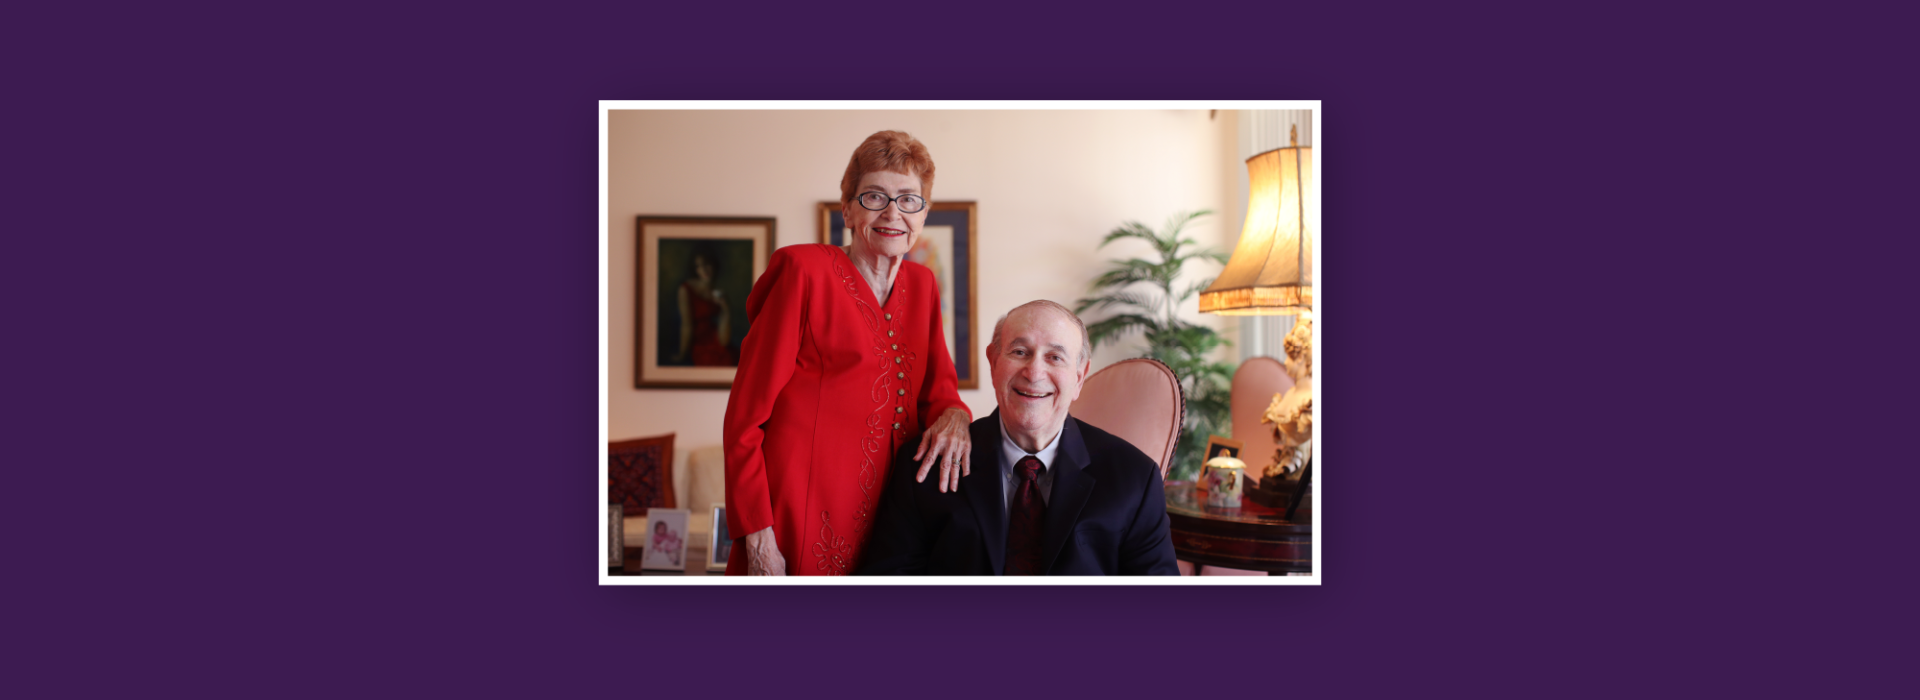 Dr. Morris Applebaum and his wife Arleen Applebaum